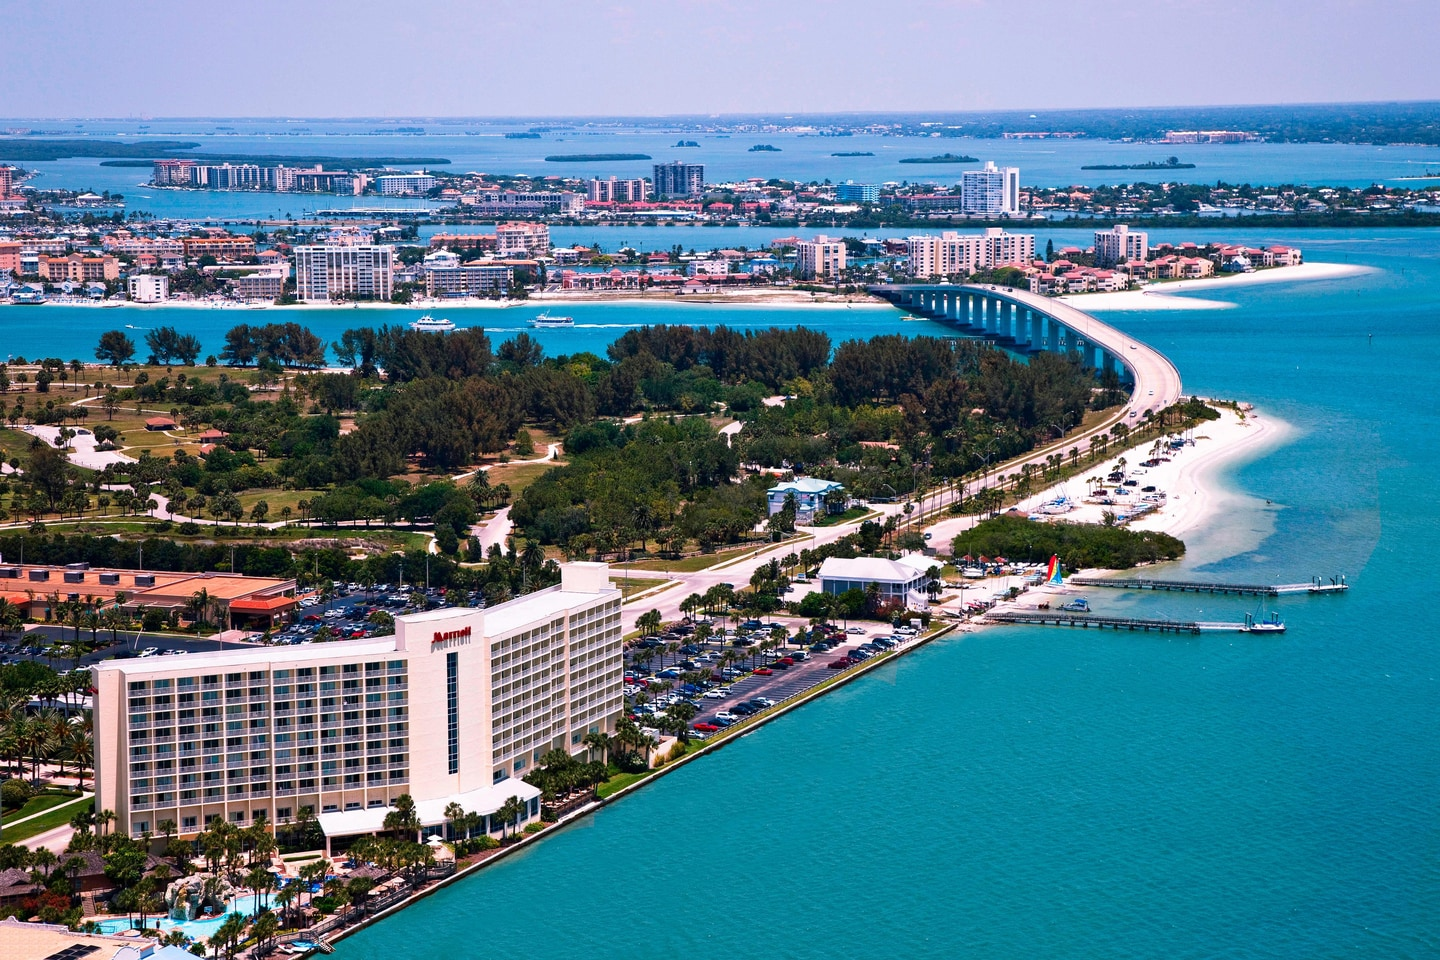 Clearwater Beach Marriott Resort